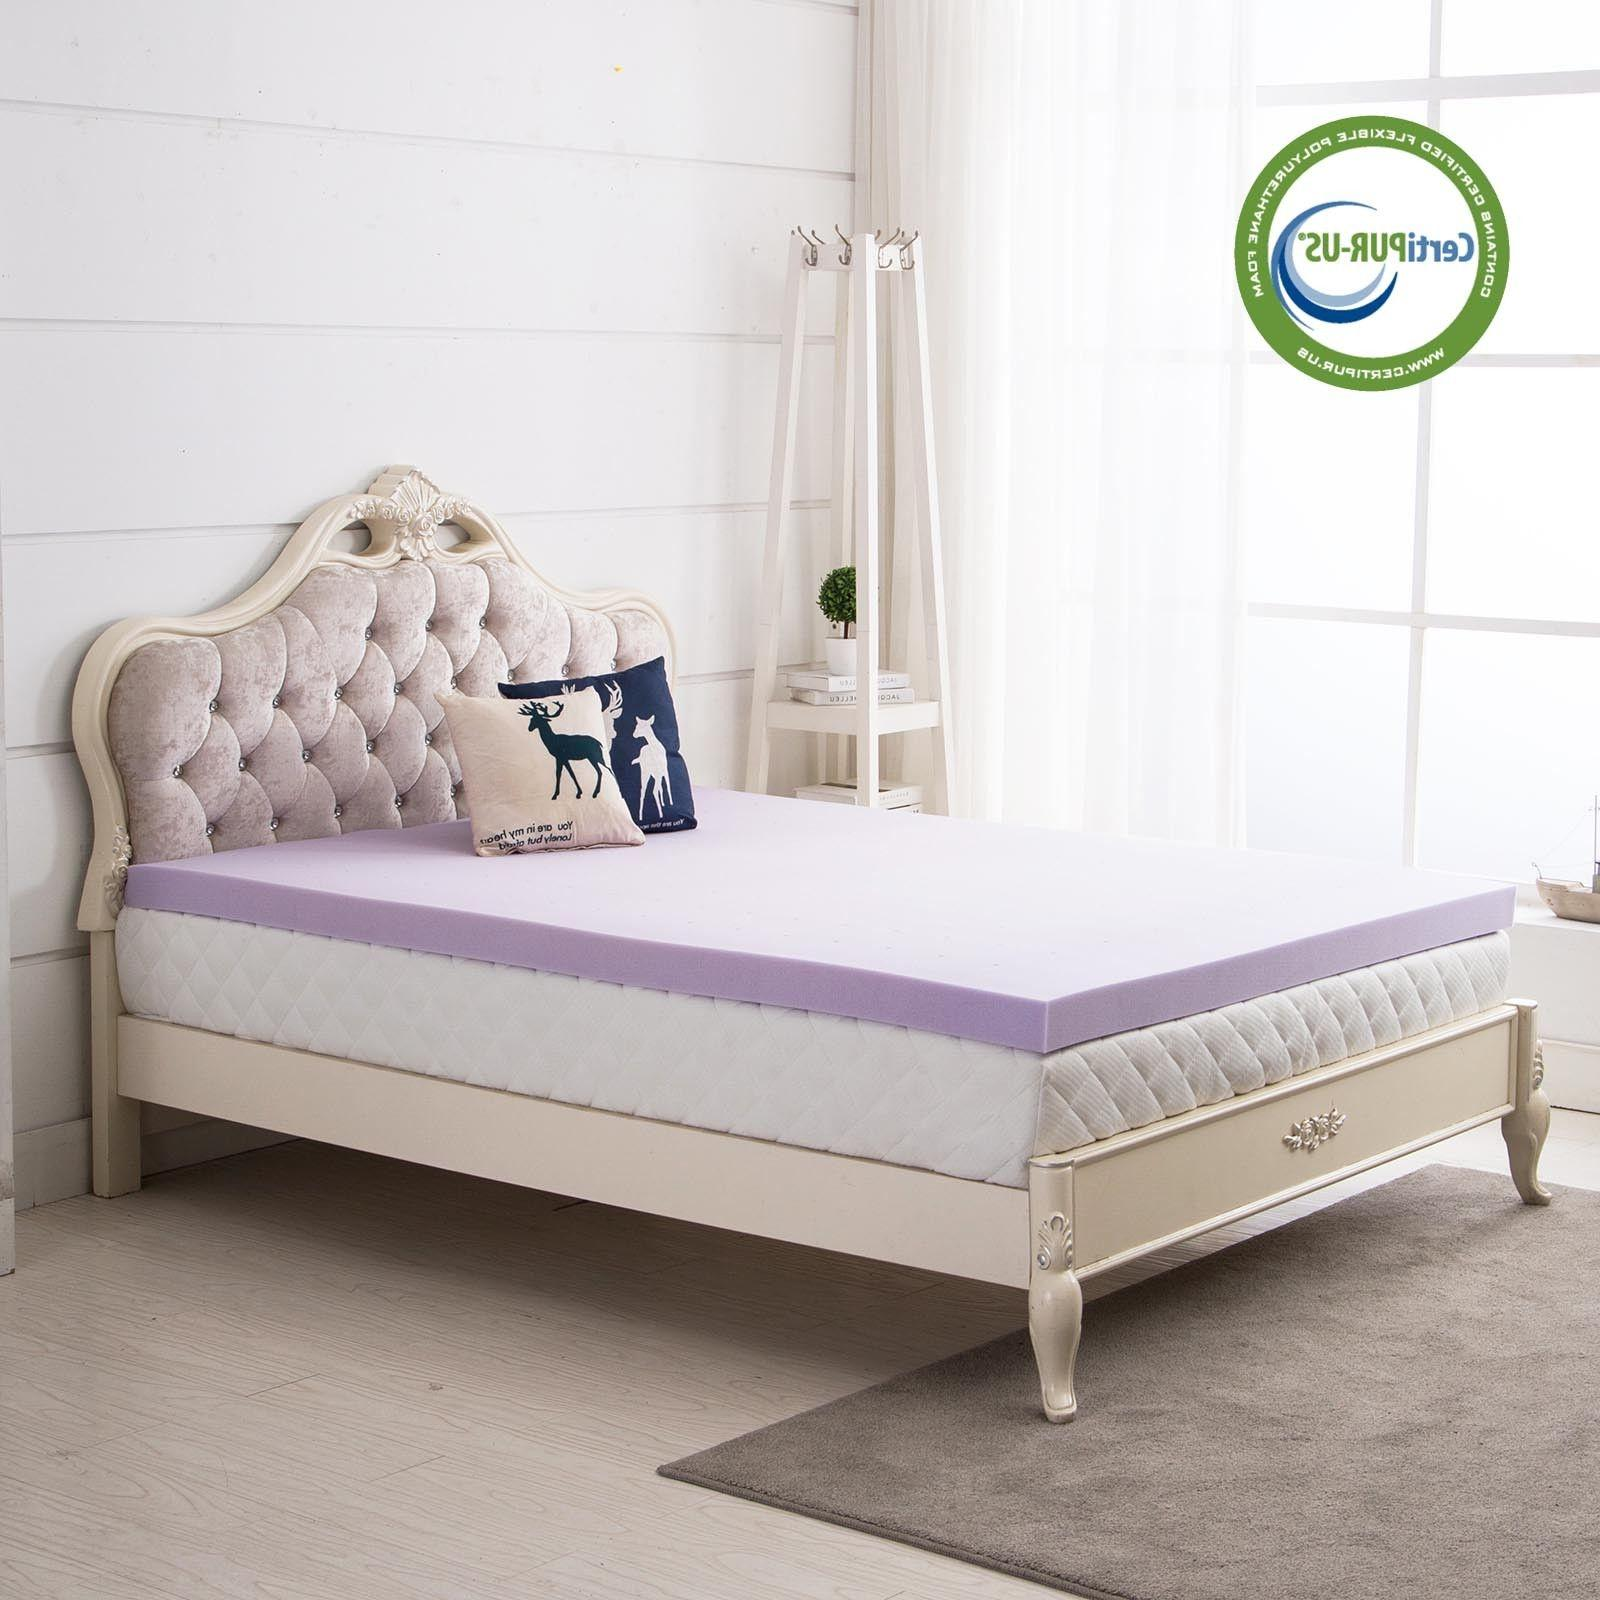 2.5/3/4 Inch Memory Mattress Lavender Dot Queen Twin Full